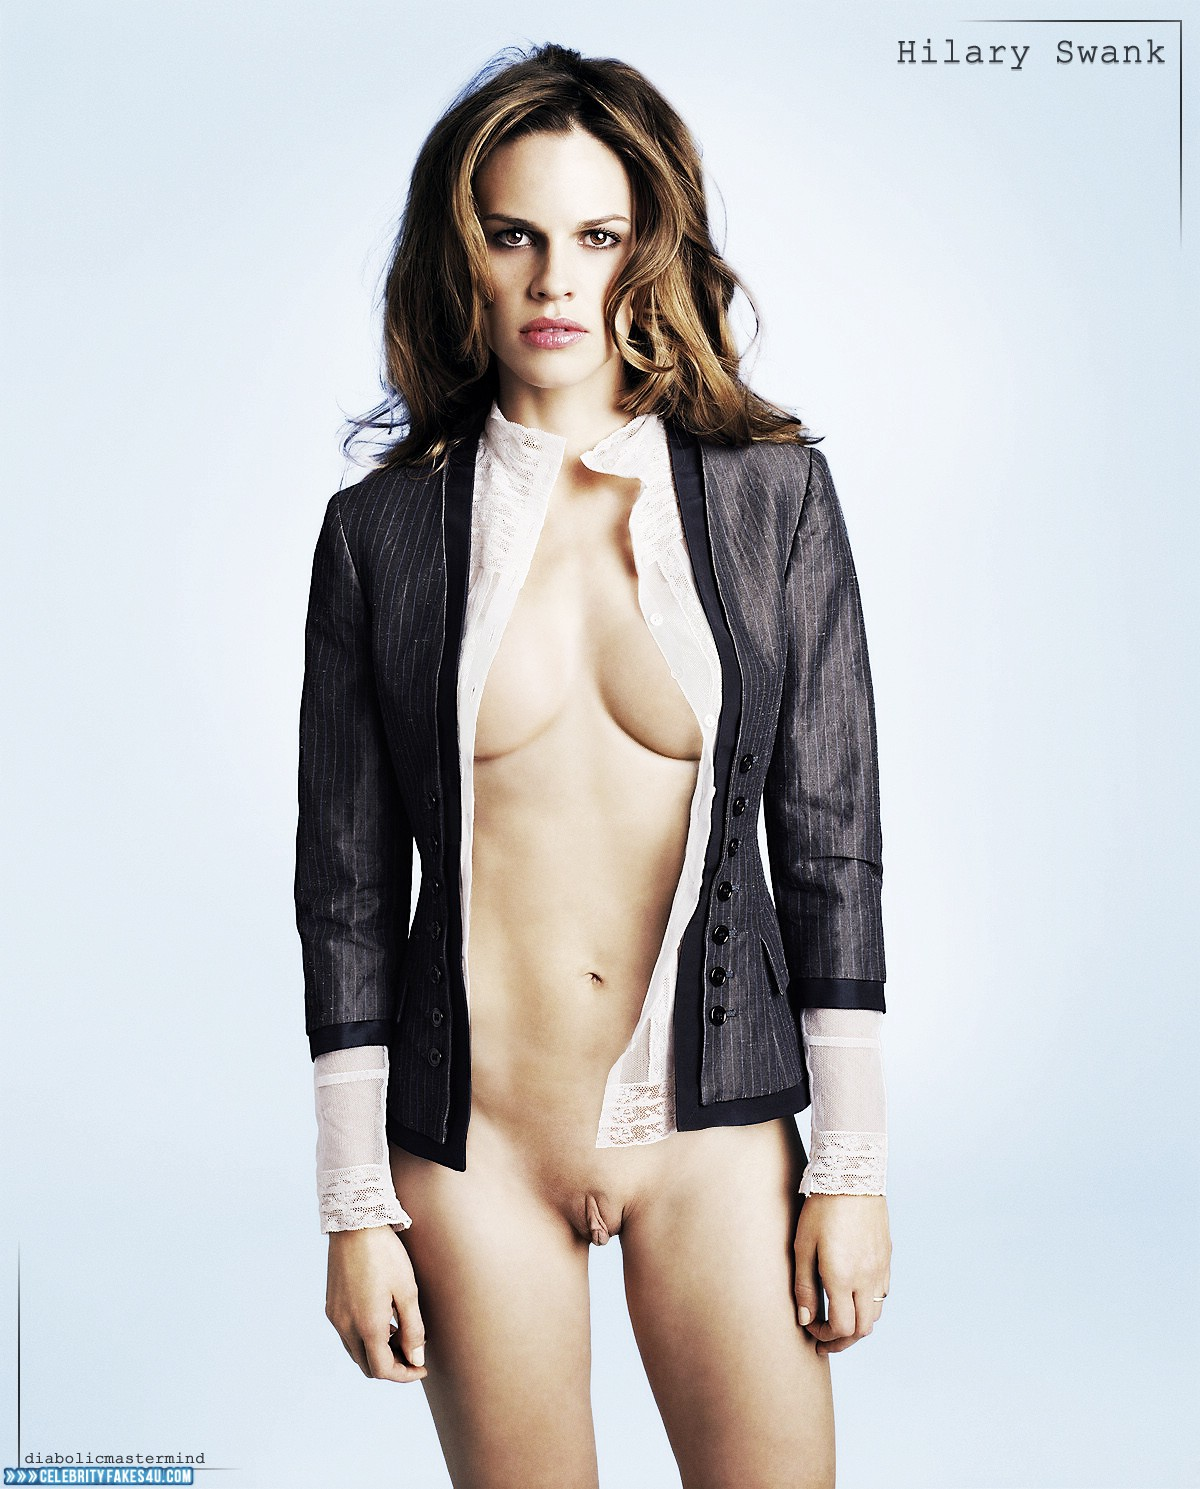 Topless pictures of hilary swank, the best taboo pics